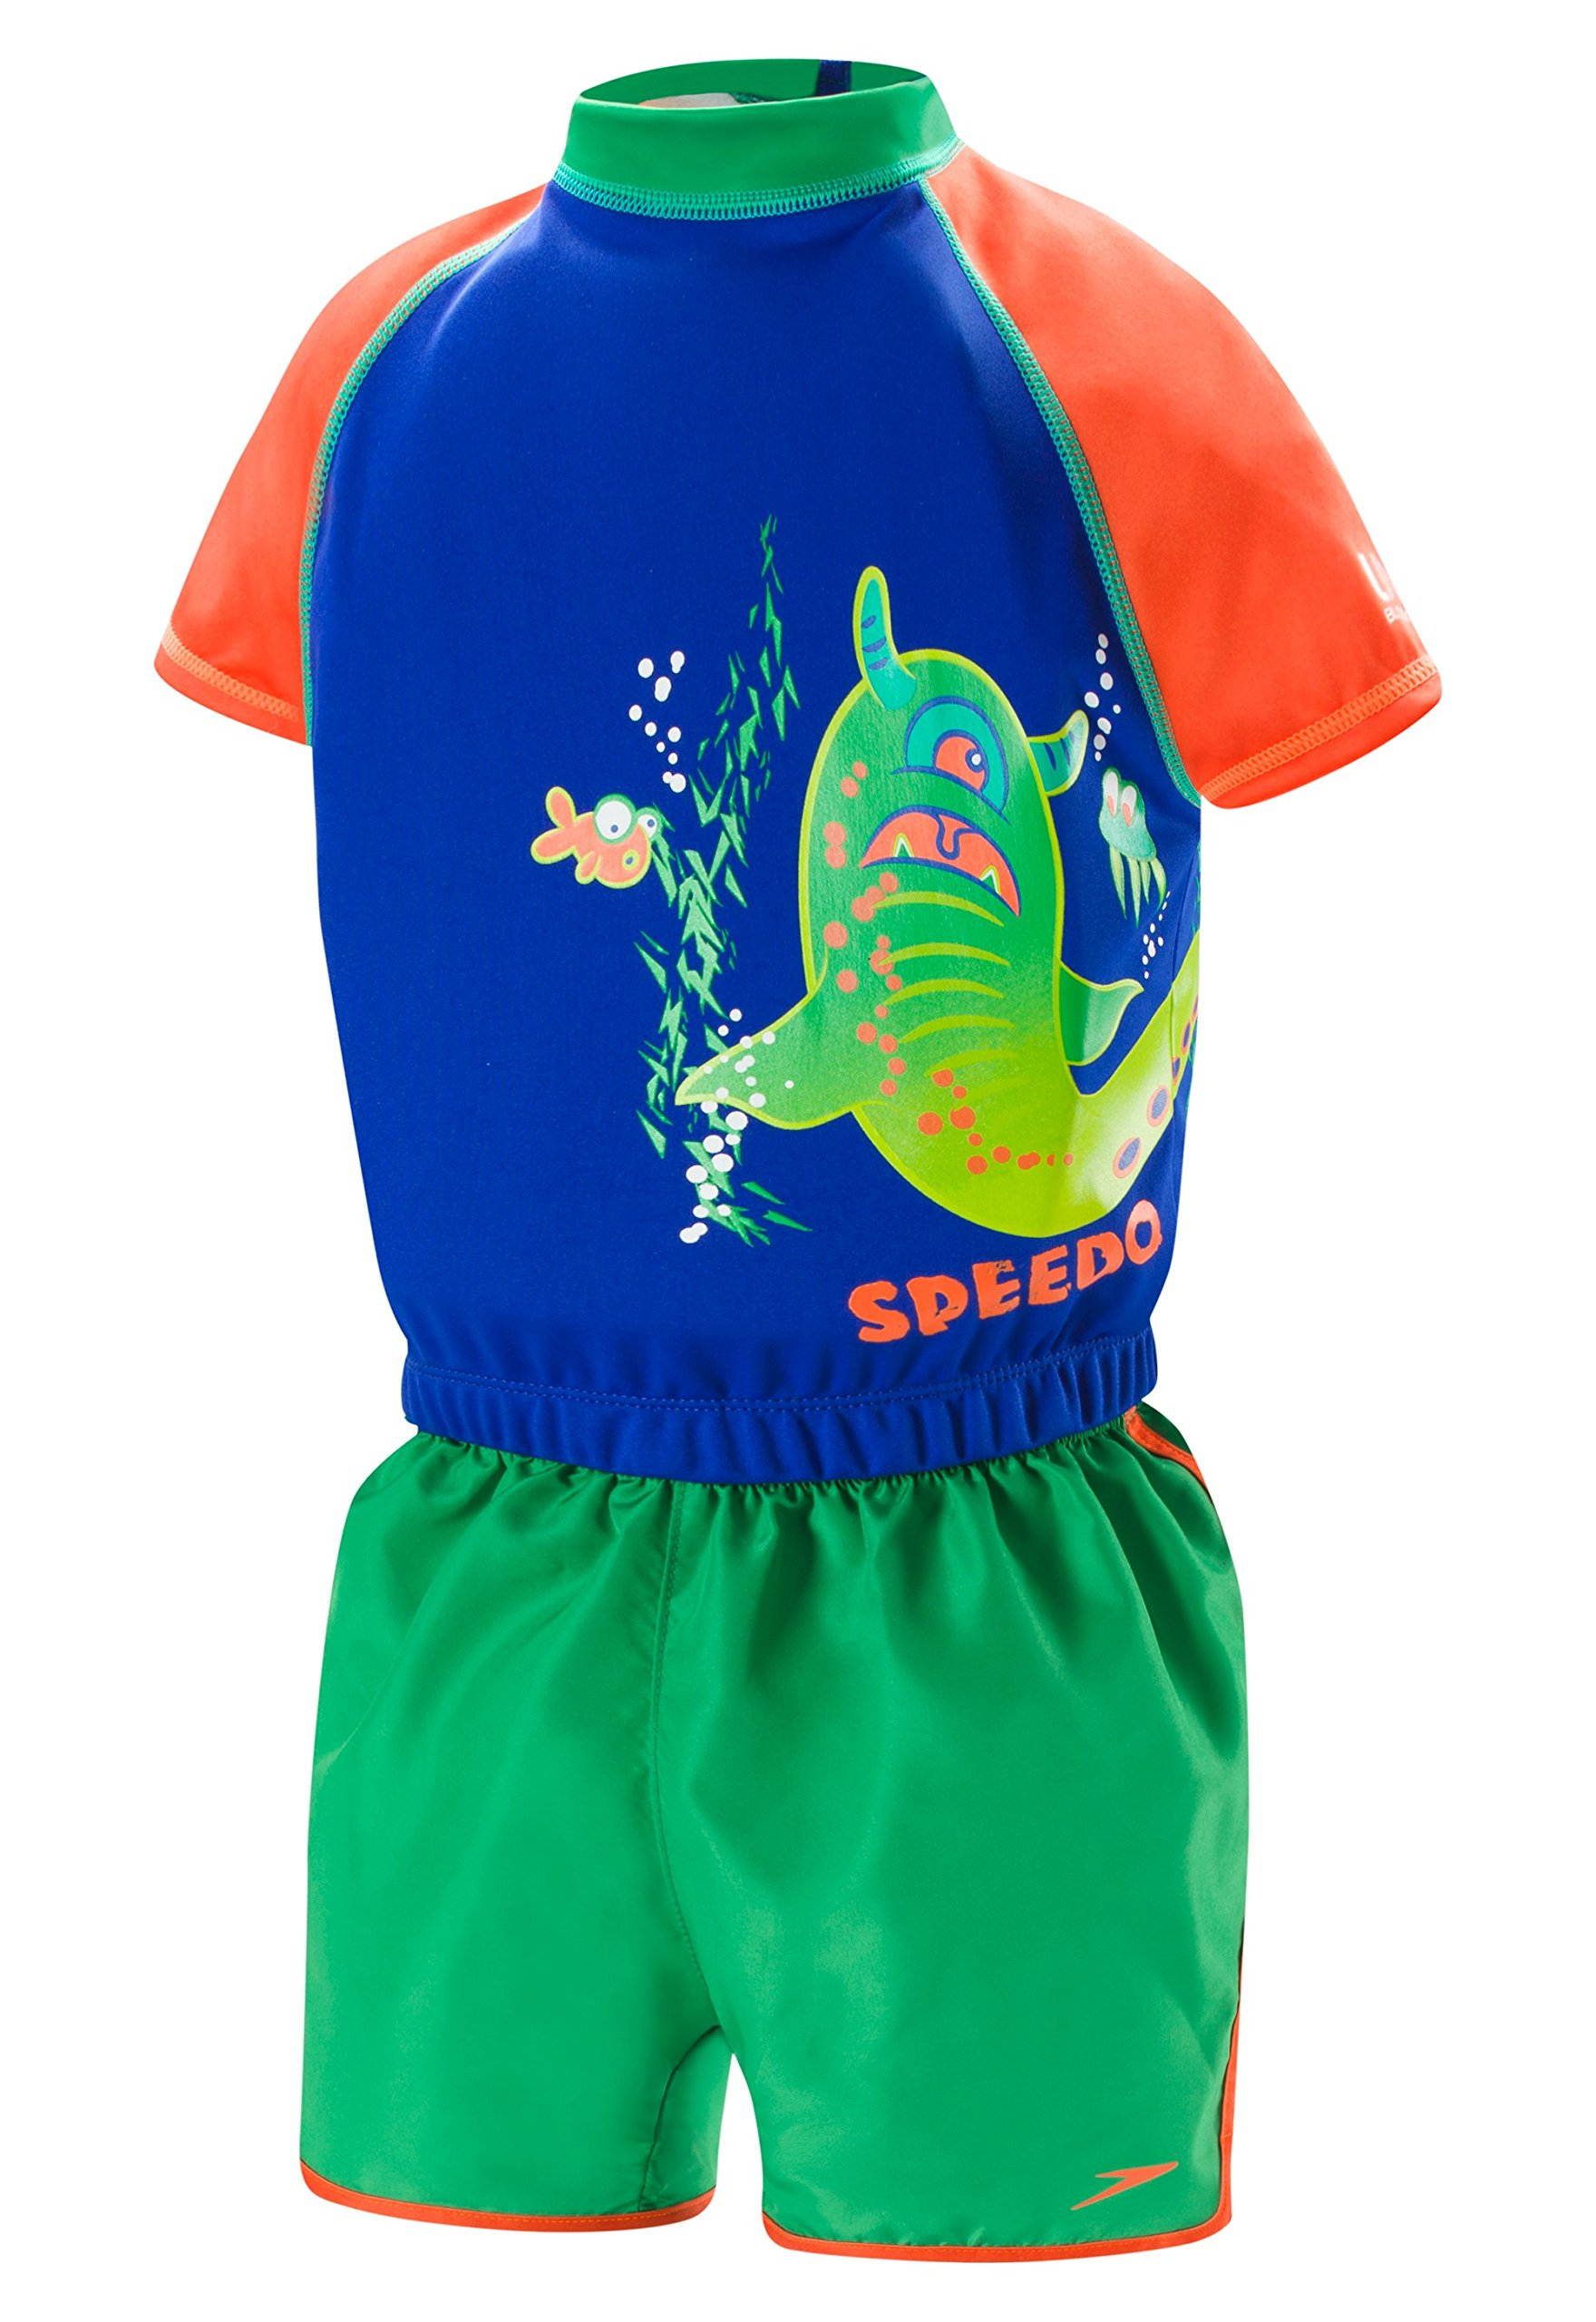 Speedo Kids UPF 50+ Begin to Swim Polywog Swimsuit, Blue/Orange, Medium